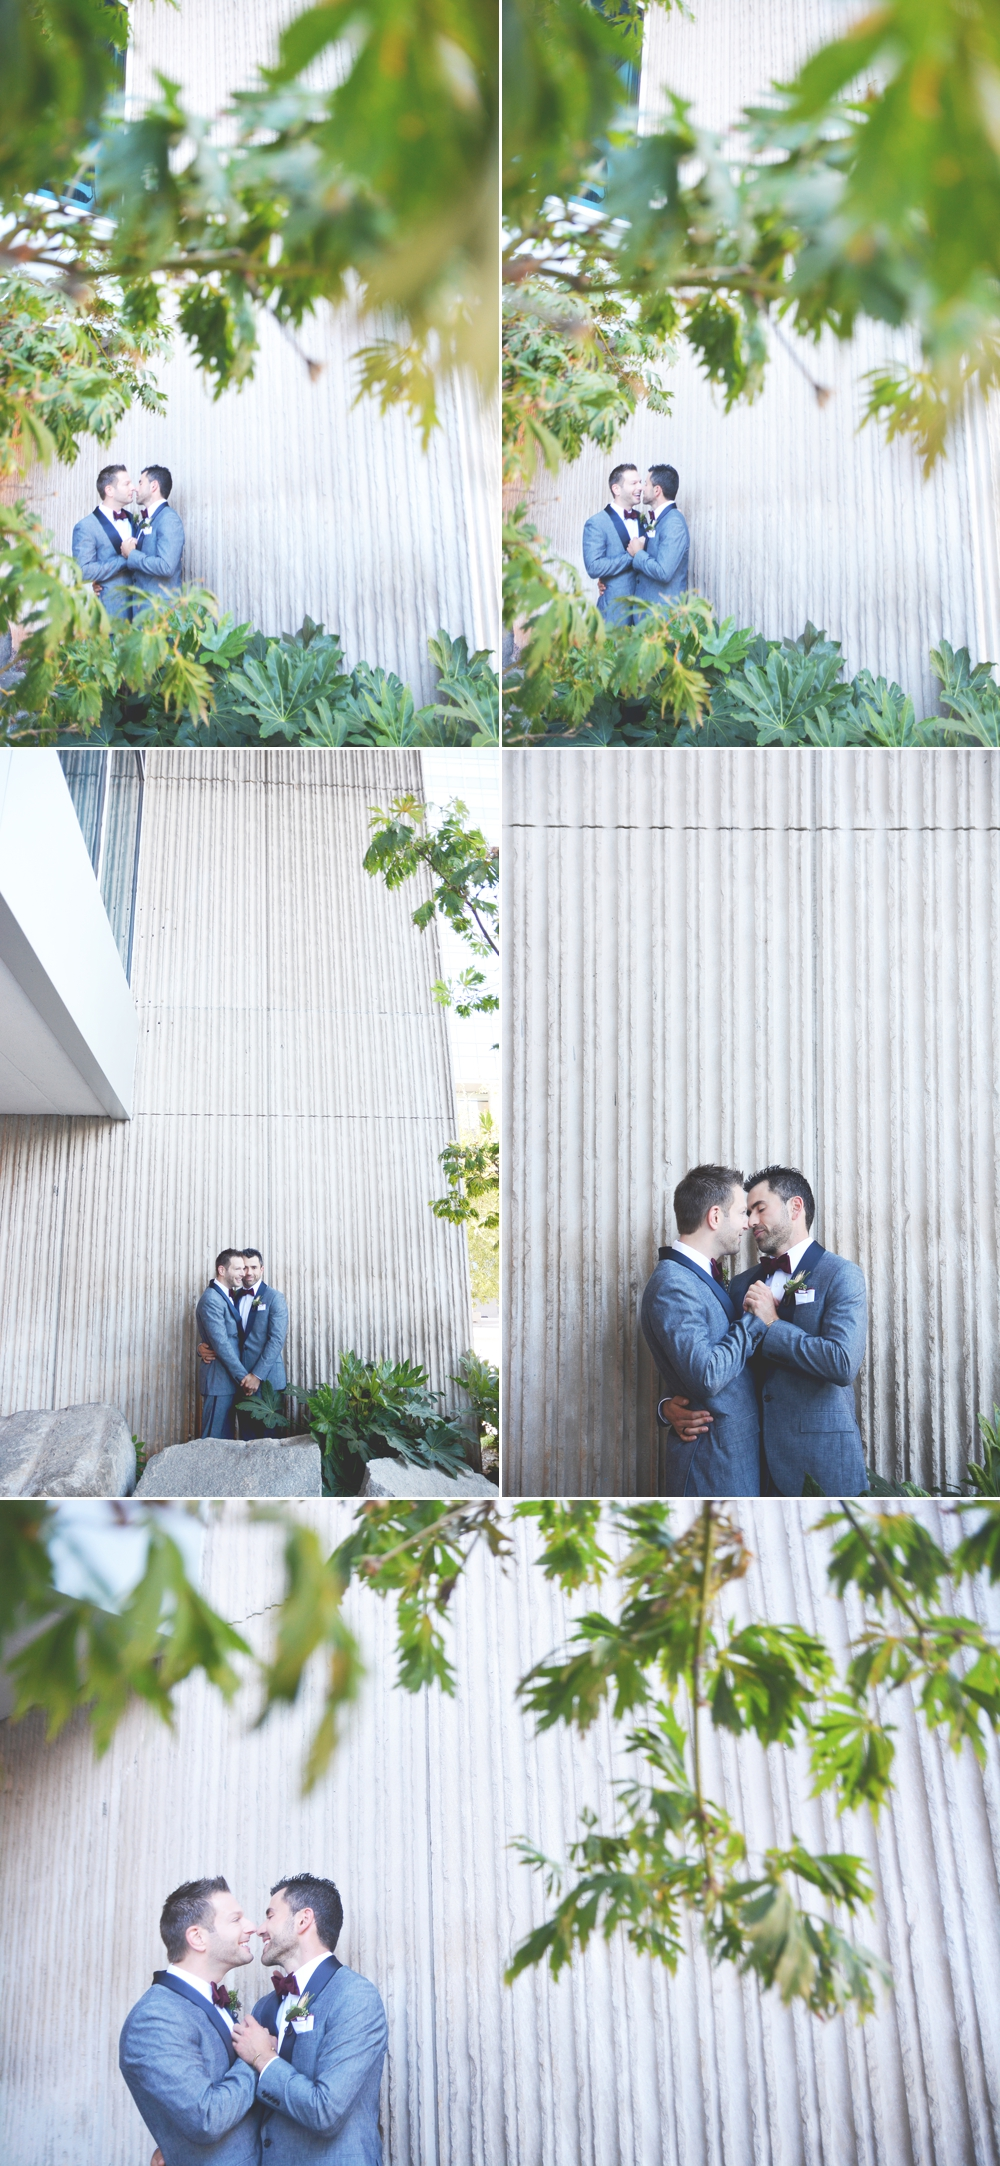 terminus-330-lgbt-wedding-photography-six-hearts-photography010